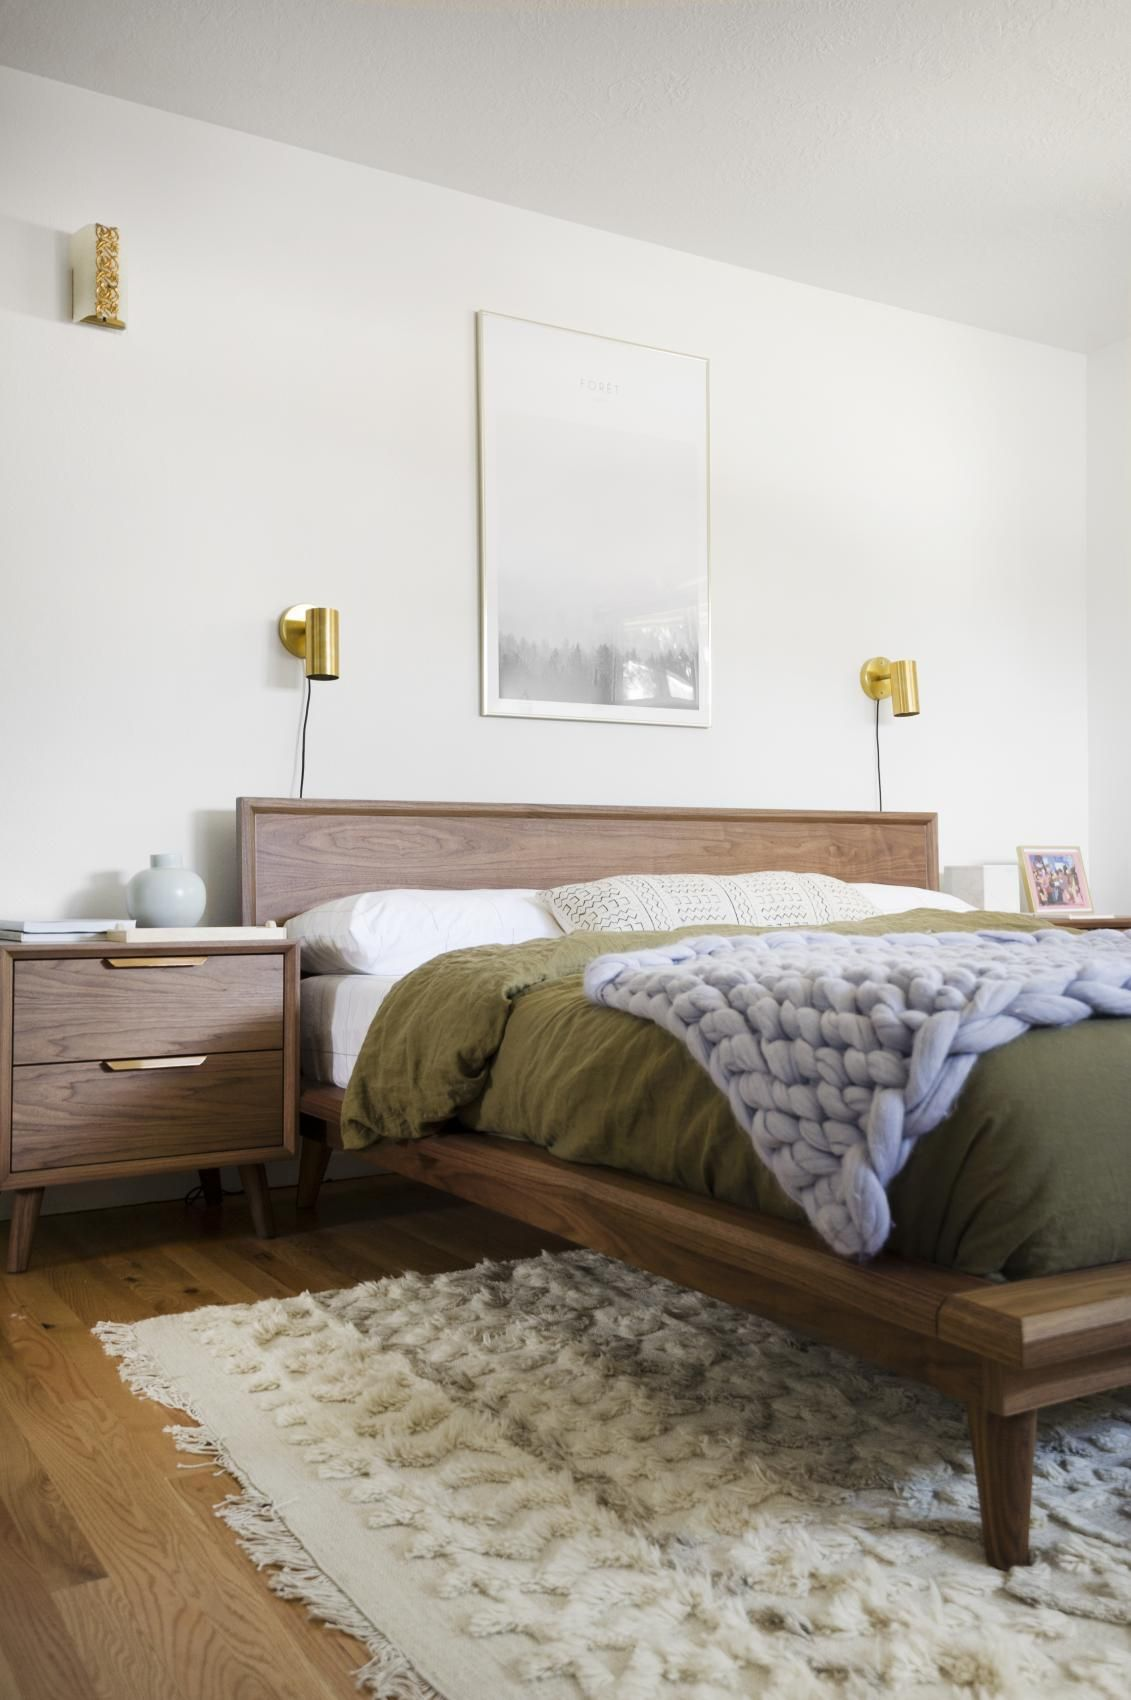 Kirsten Groveu0027s bedroom with Rove Concept via